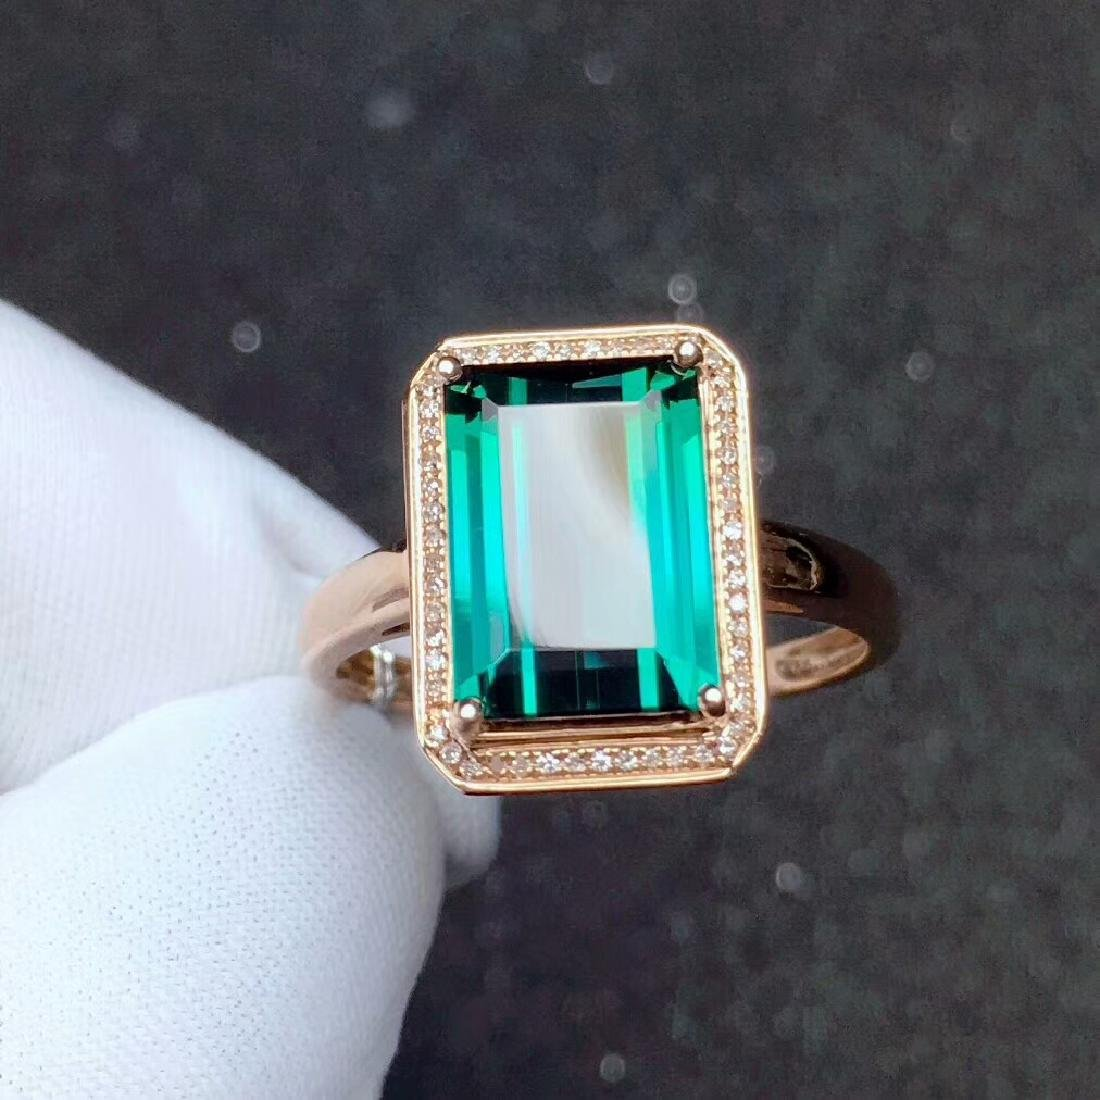 4ct TourmalineRing in 18kt Rose Gold